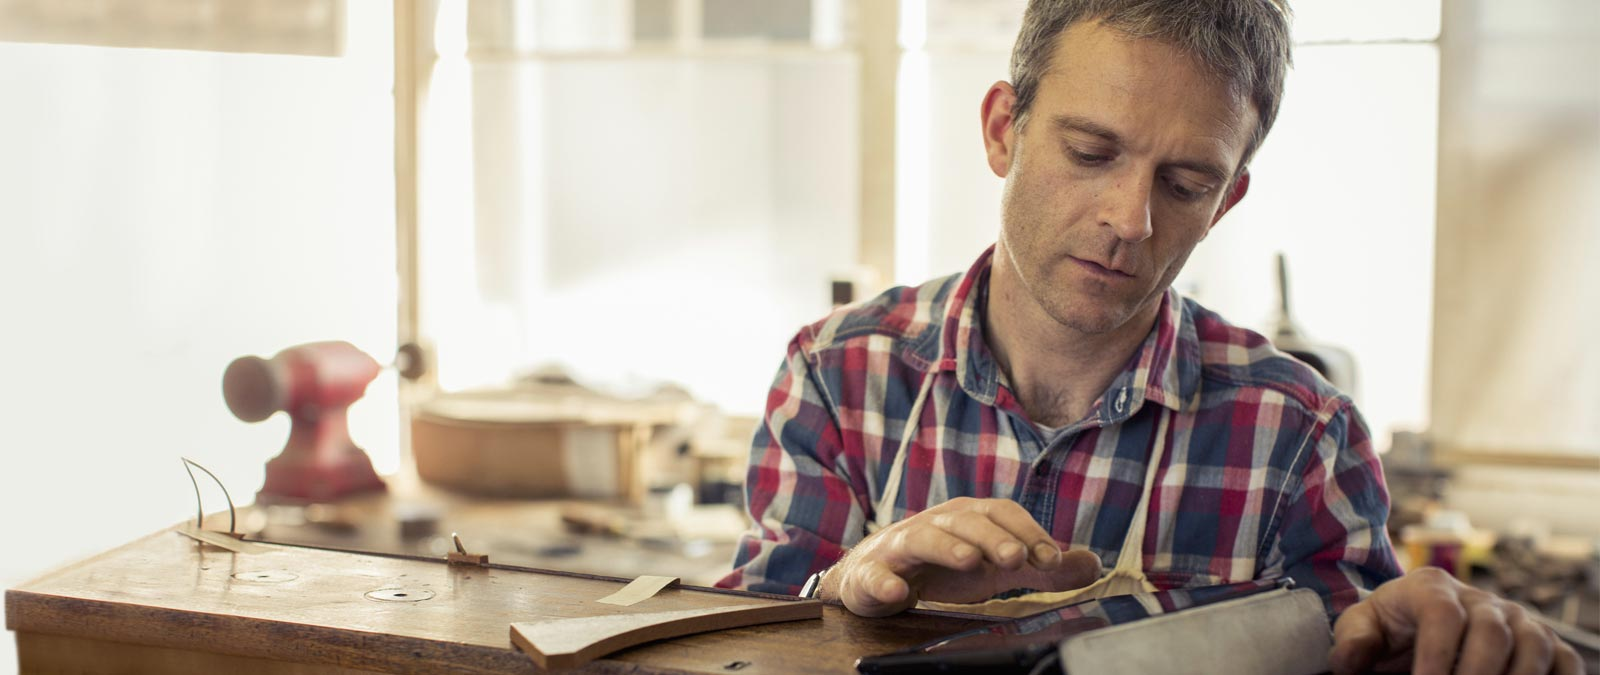 A man in a workshop using Office 365 Business on a tablet.